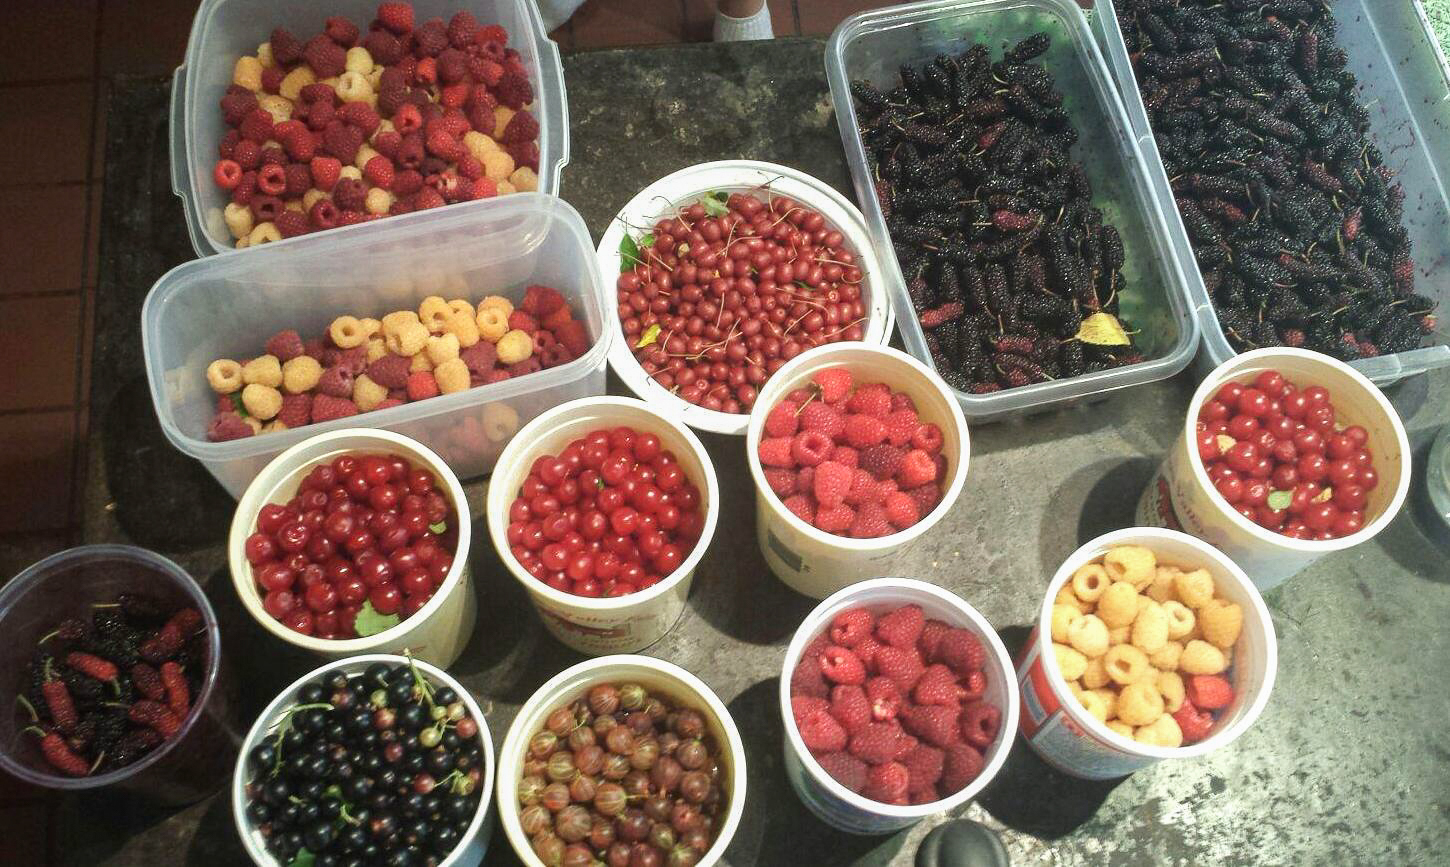 A morning's berry harvest from West Philadelphia's Ogden Orchard includes raspberries, gooseberries, currants, goumis and mulberri